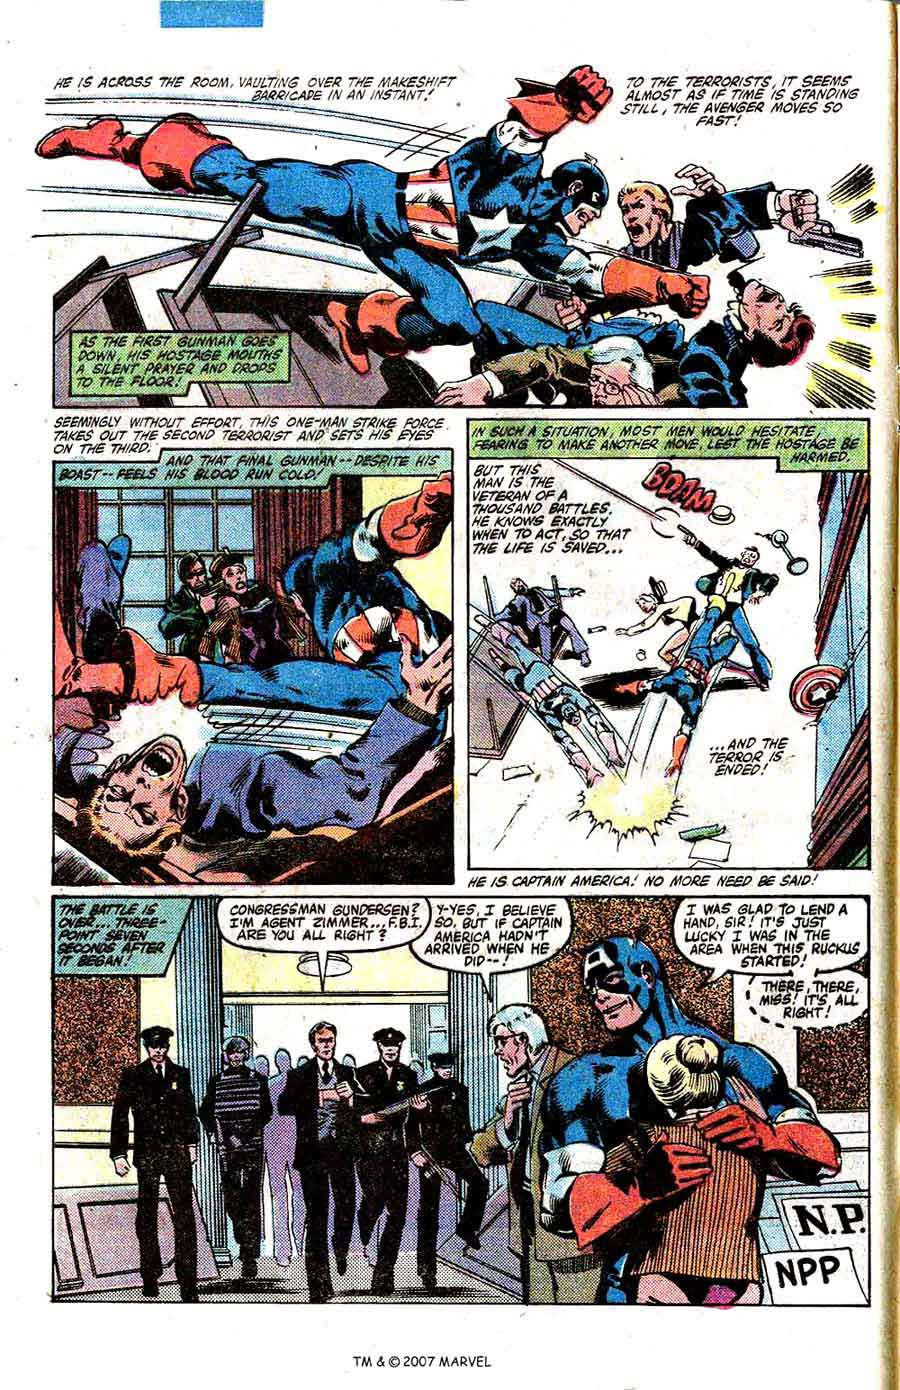 Captain America #250 marvel 1980s bronze age comic book page art by John Byrne